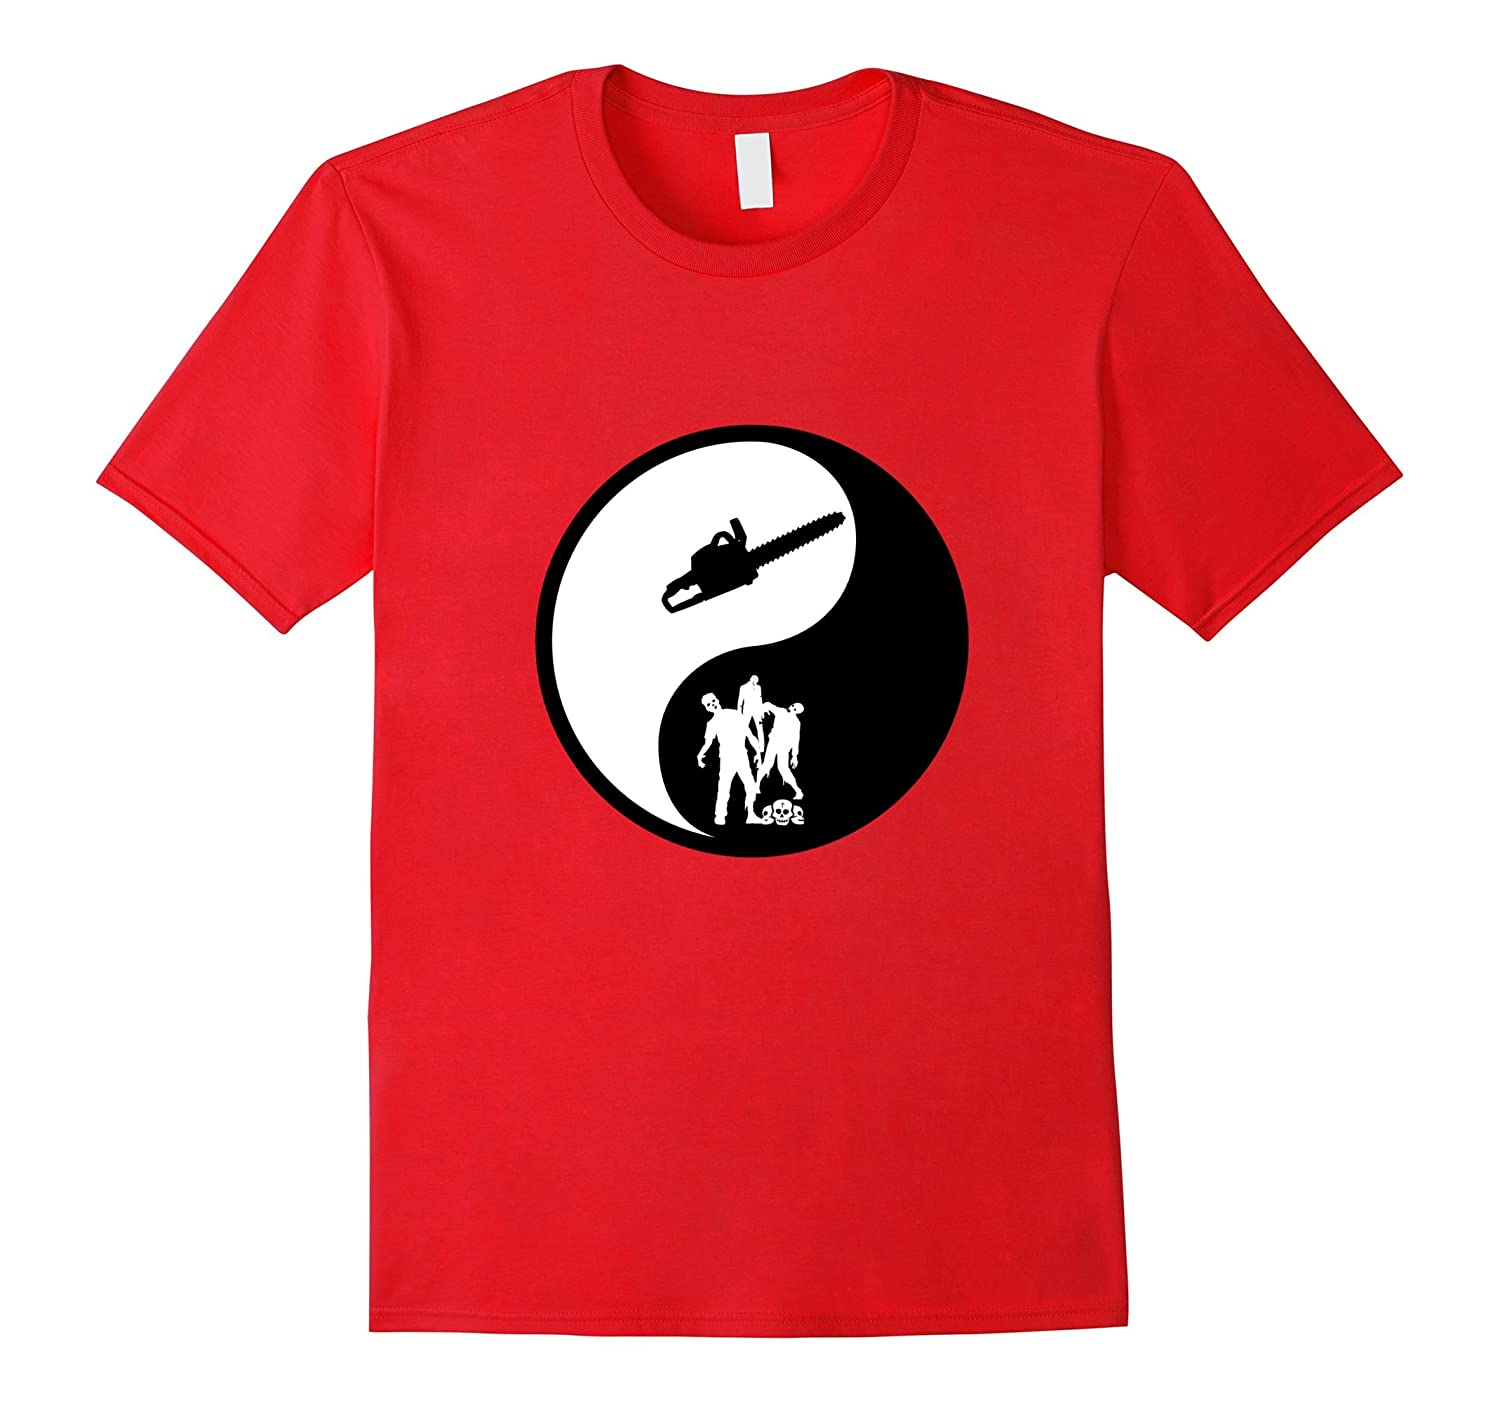 Yin Yang Zombie Chainsaw t shirt fun gift idea-CL